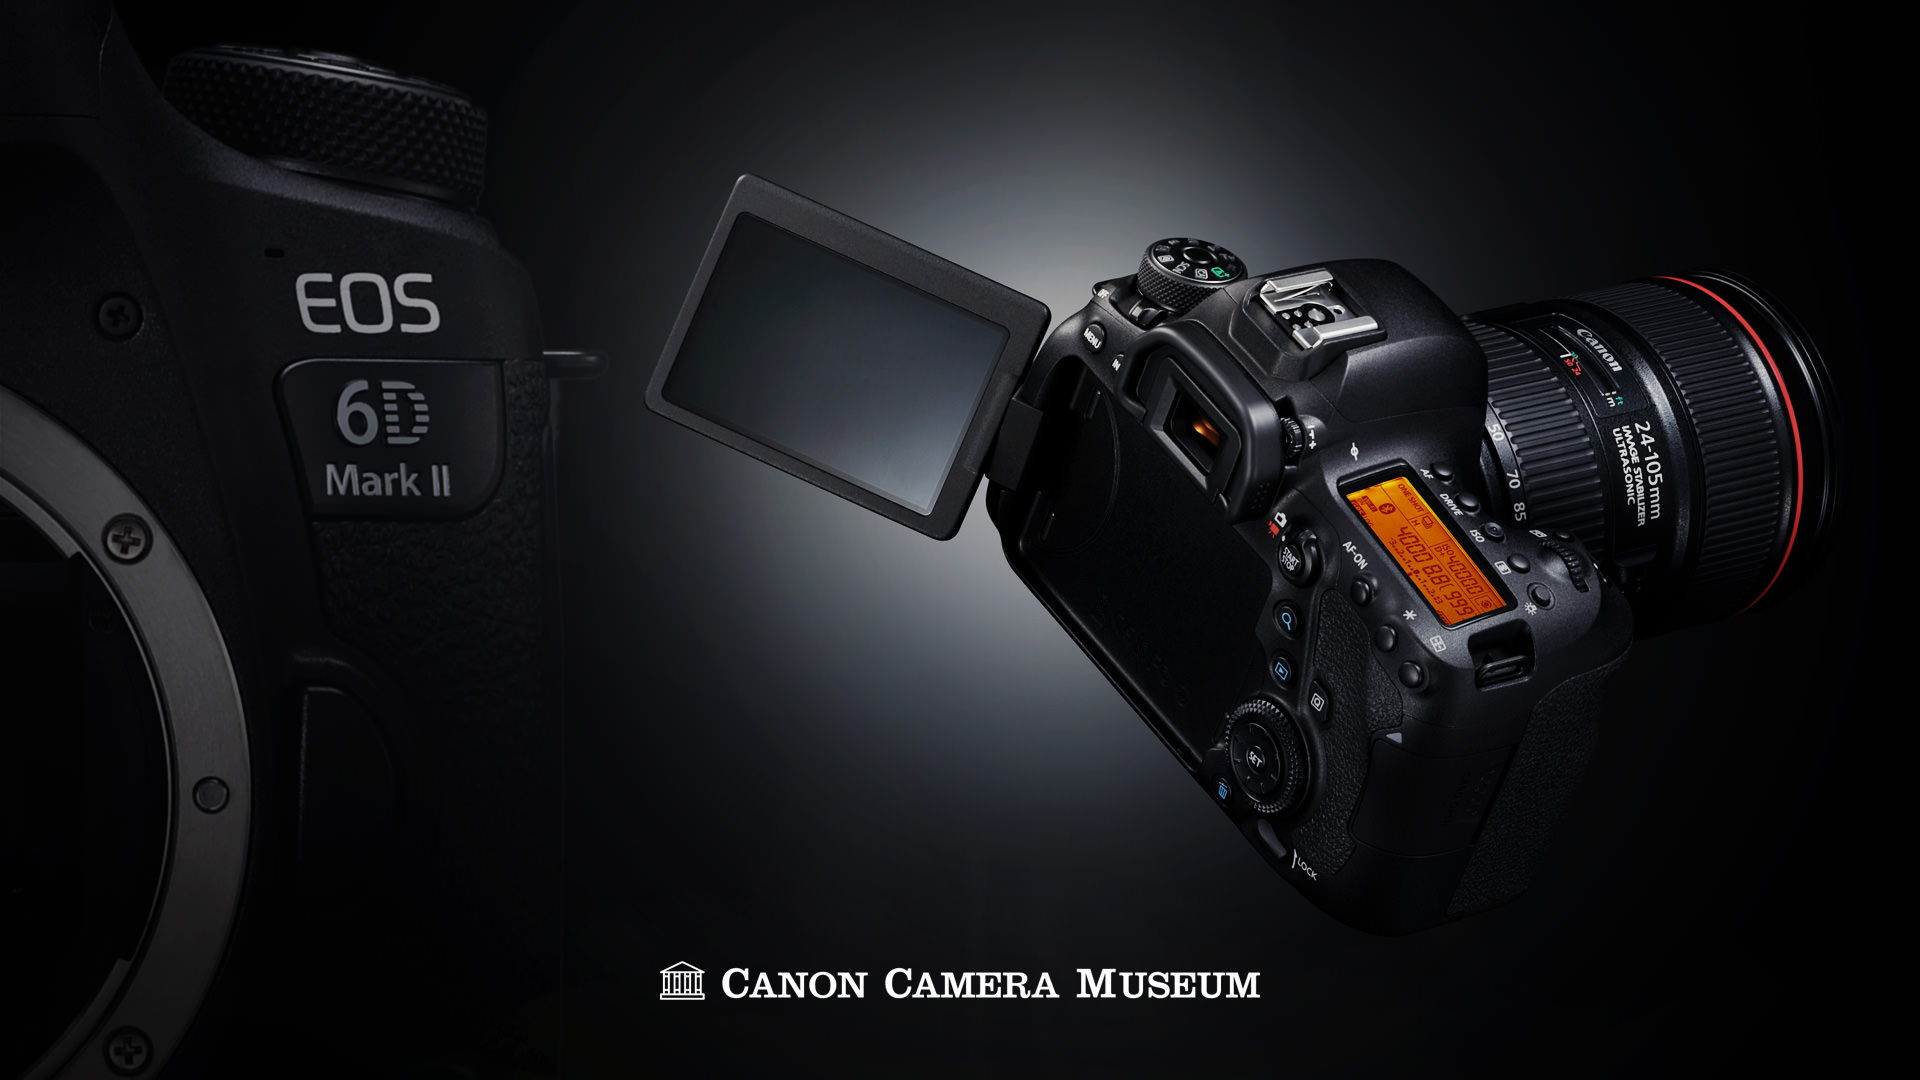 EOS 6D Mark II 1st Full Frame Camera Featuring Vari Angle LCD Monitor On The Worlds Lightest Body